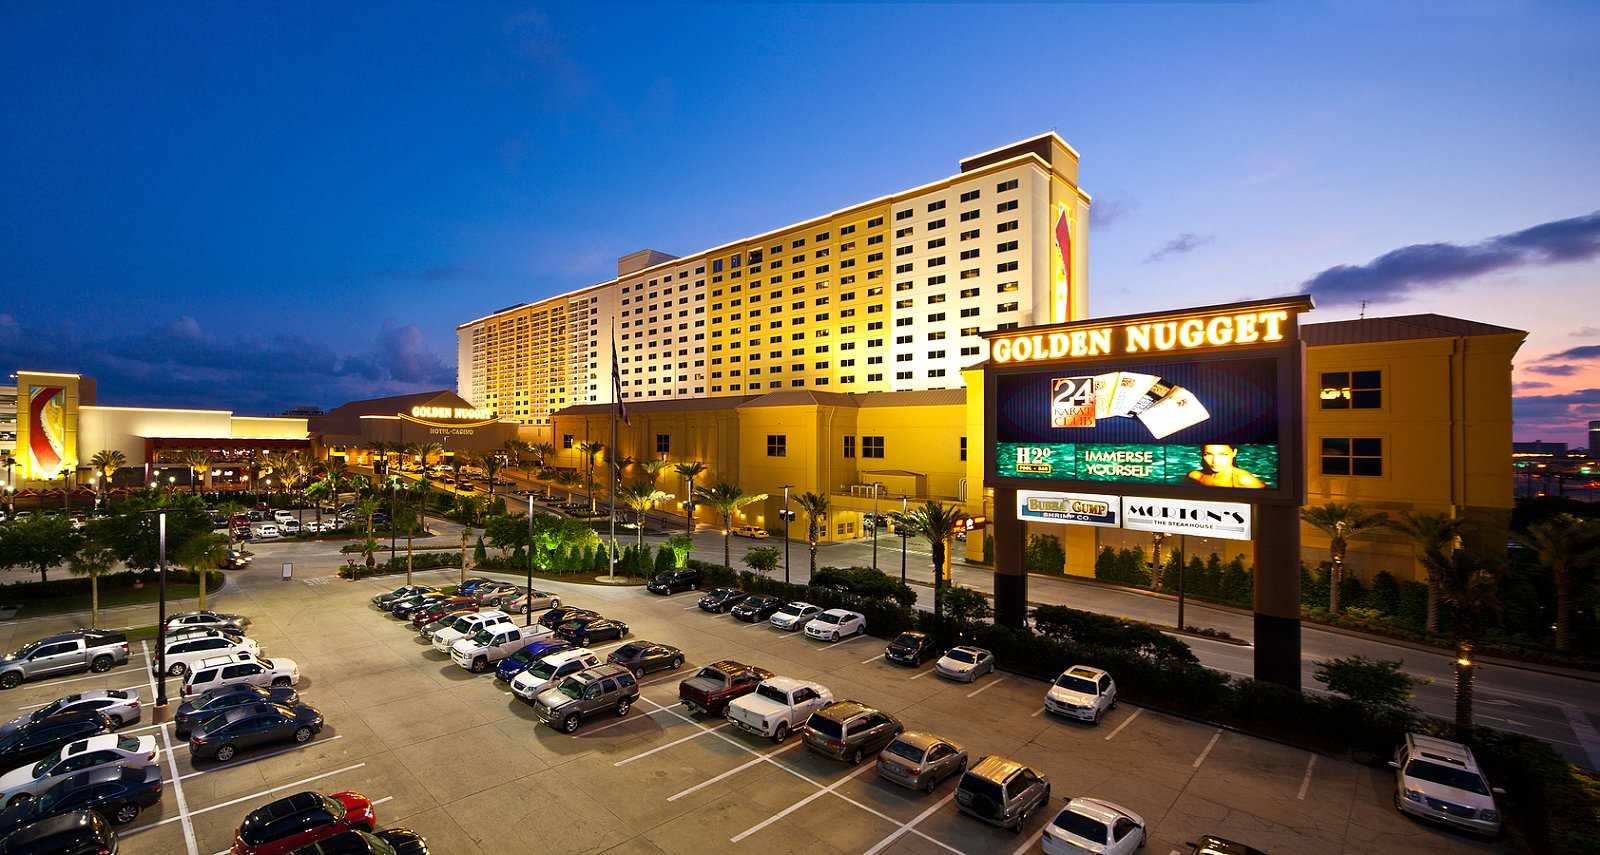 Resort Golden Nugget Biloxi Biloxi Trivago Com